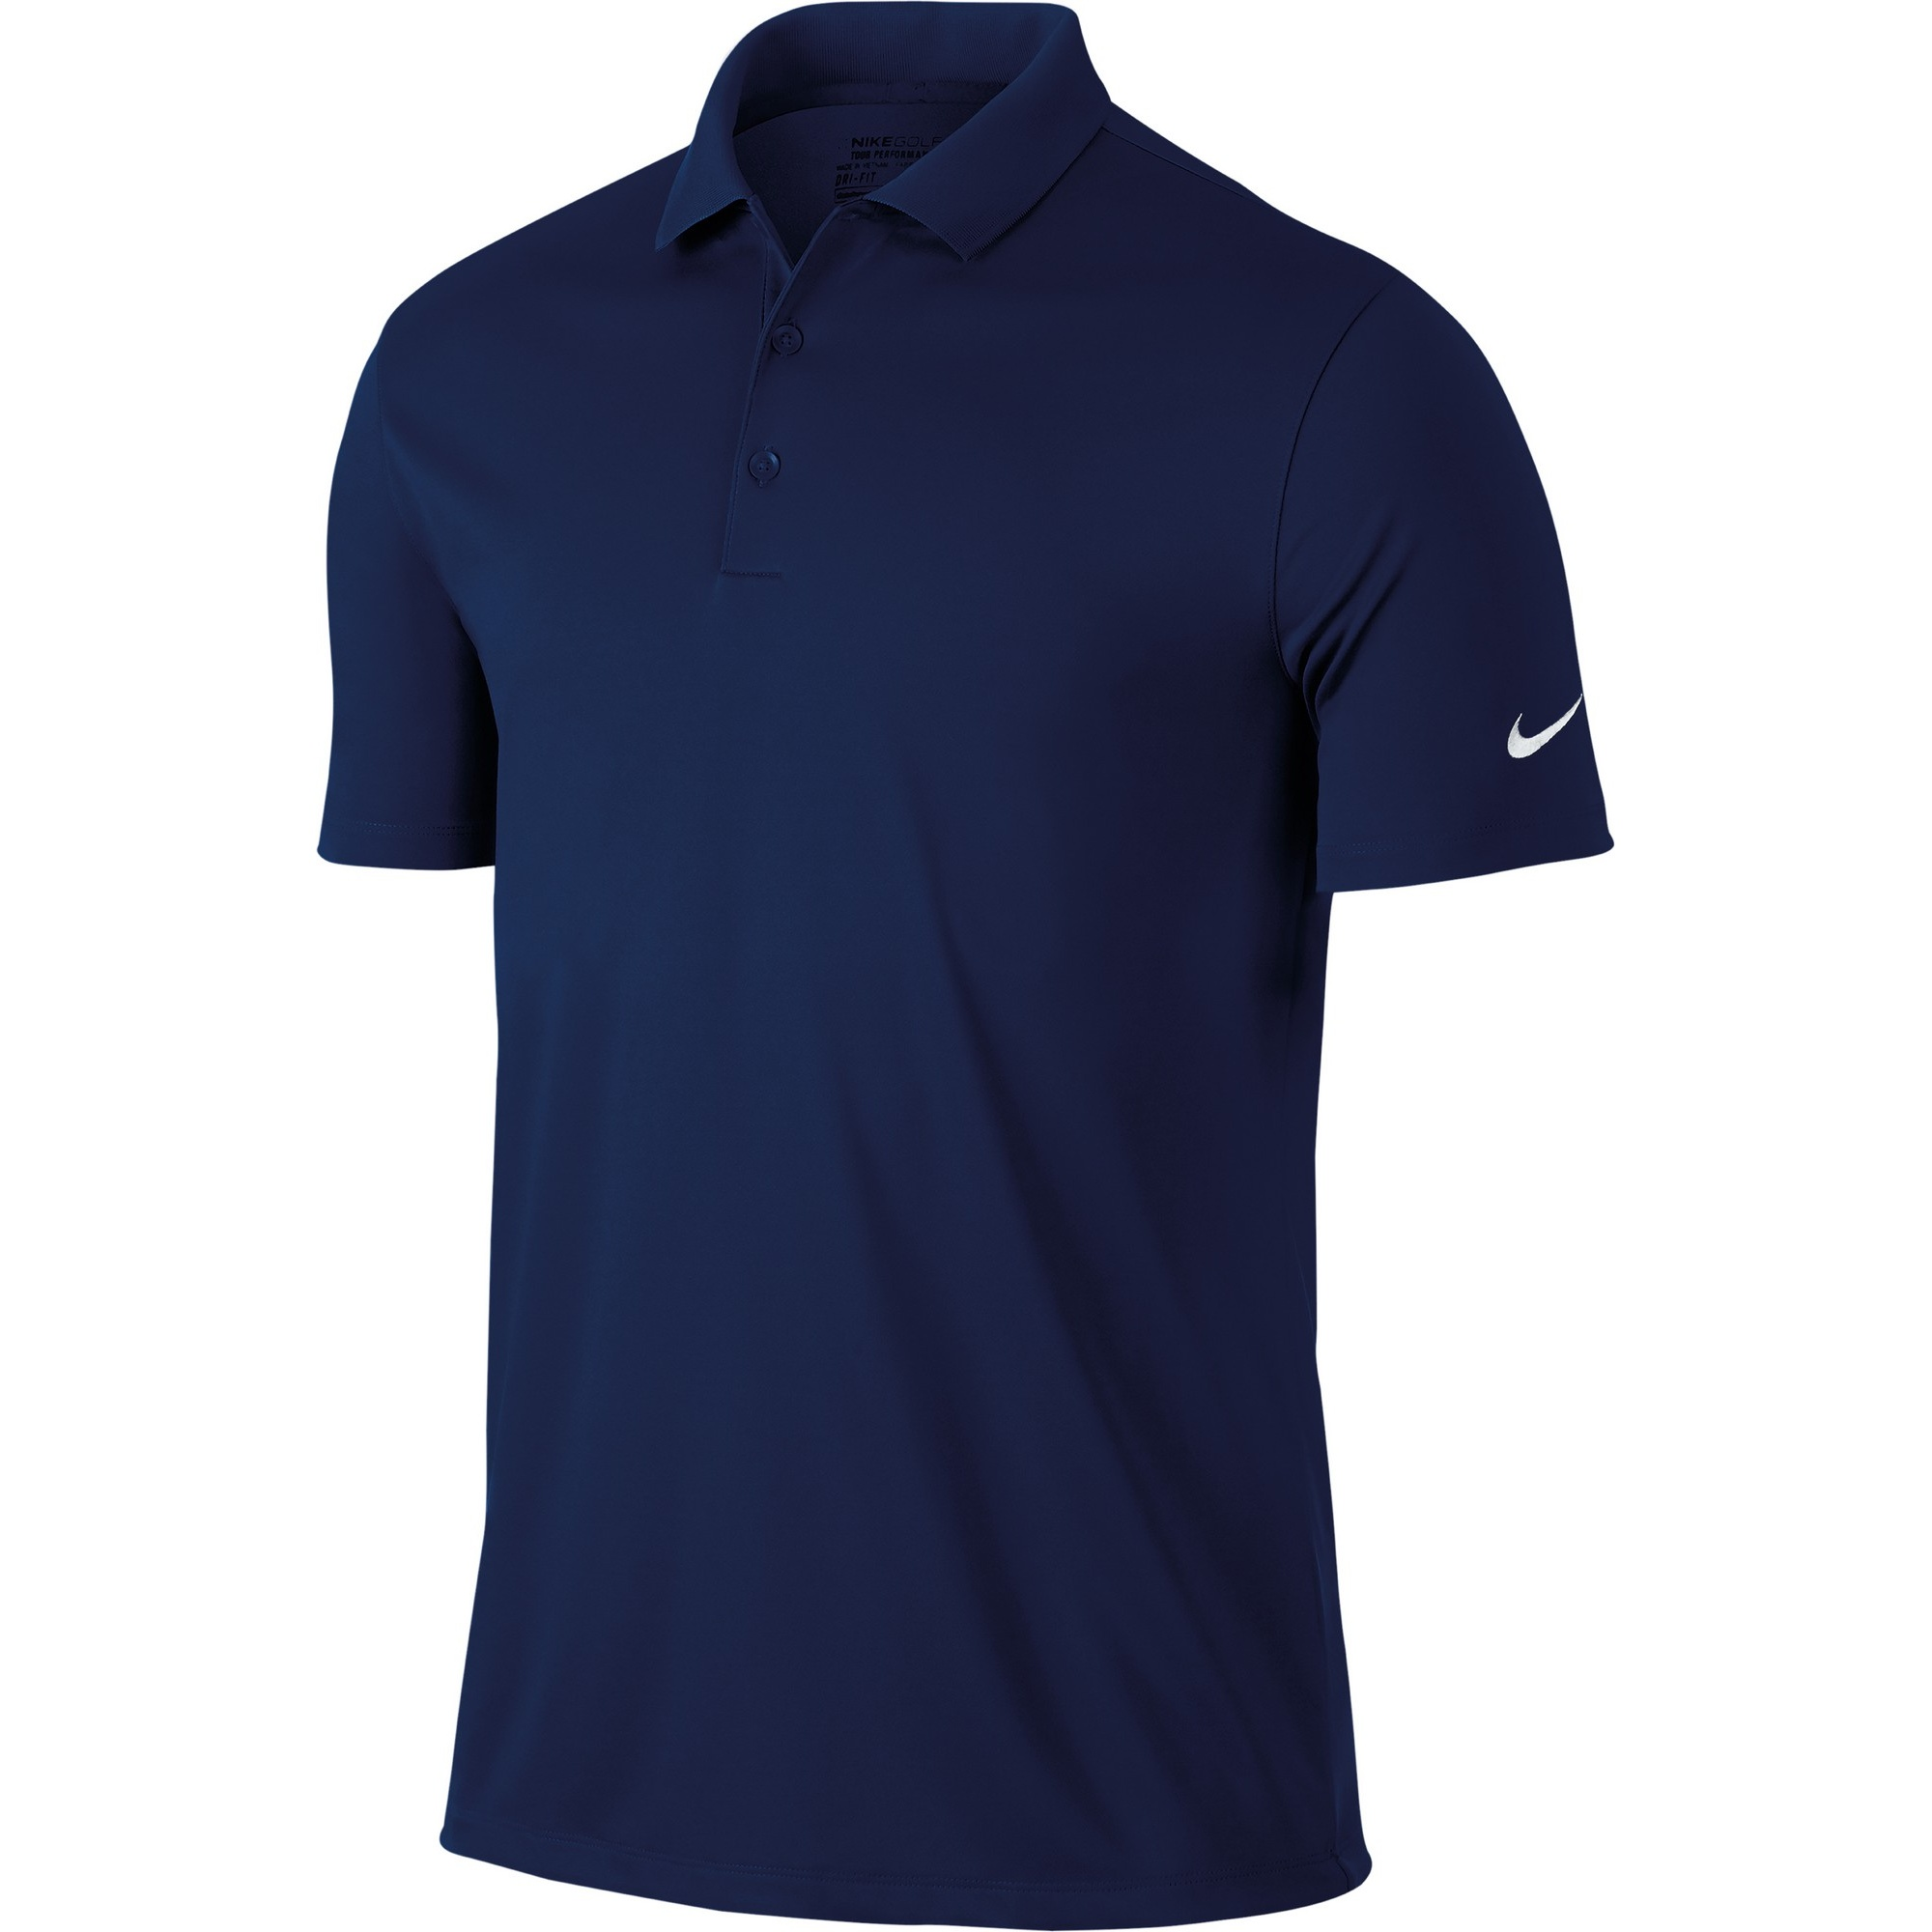 Nike Mens Victory Short Sleeve Solid Polo Shirt | eBay